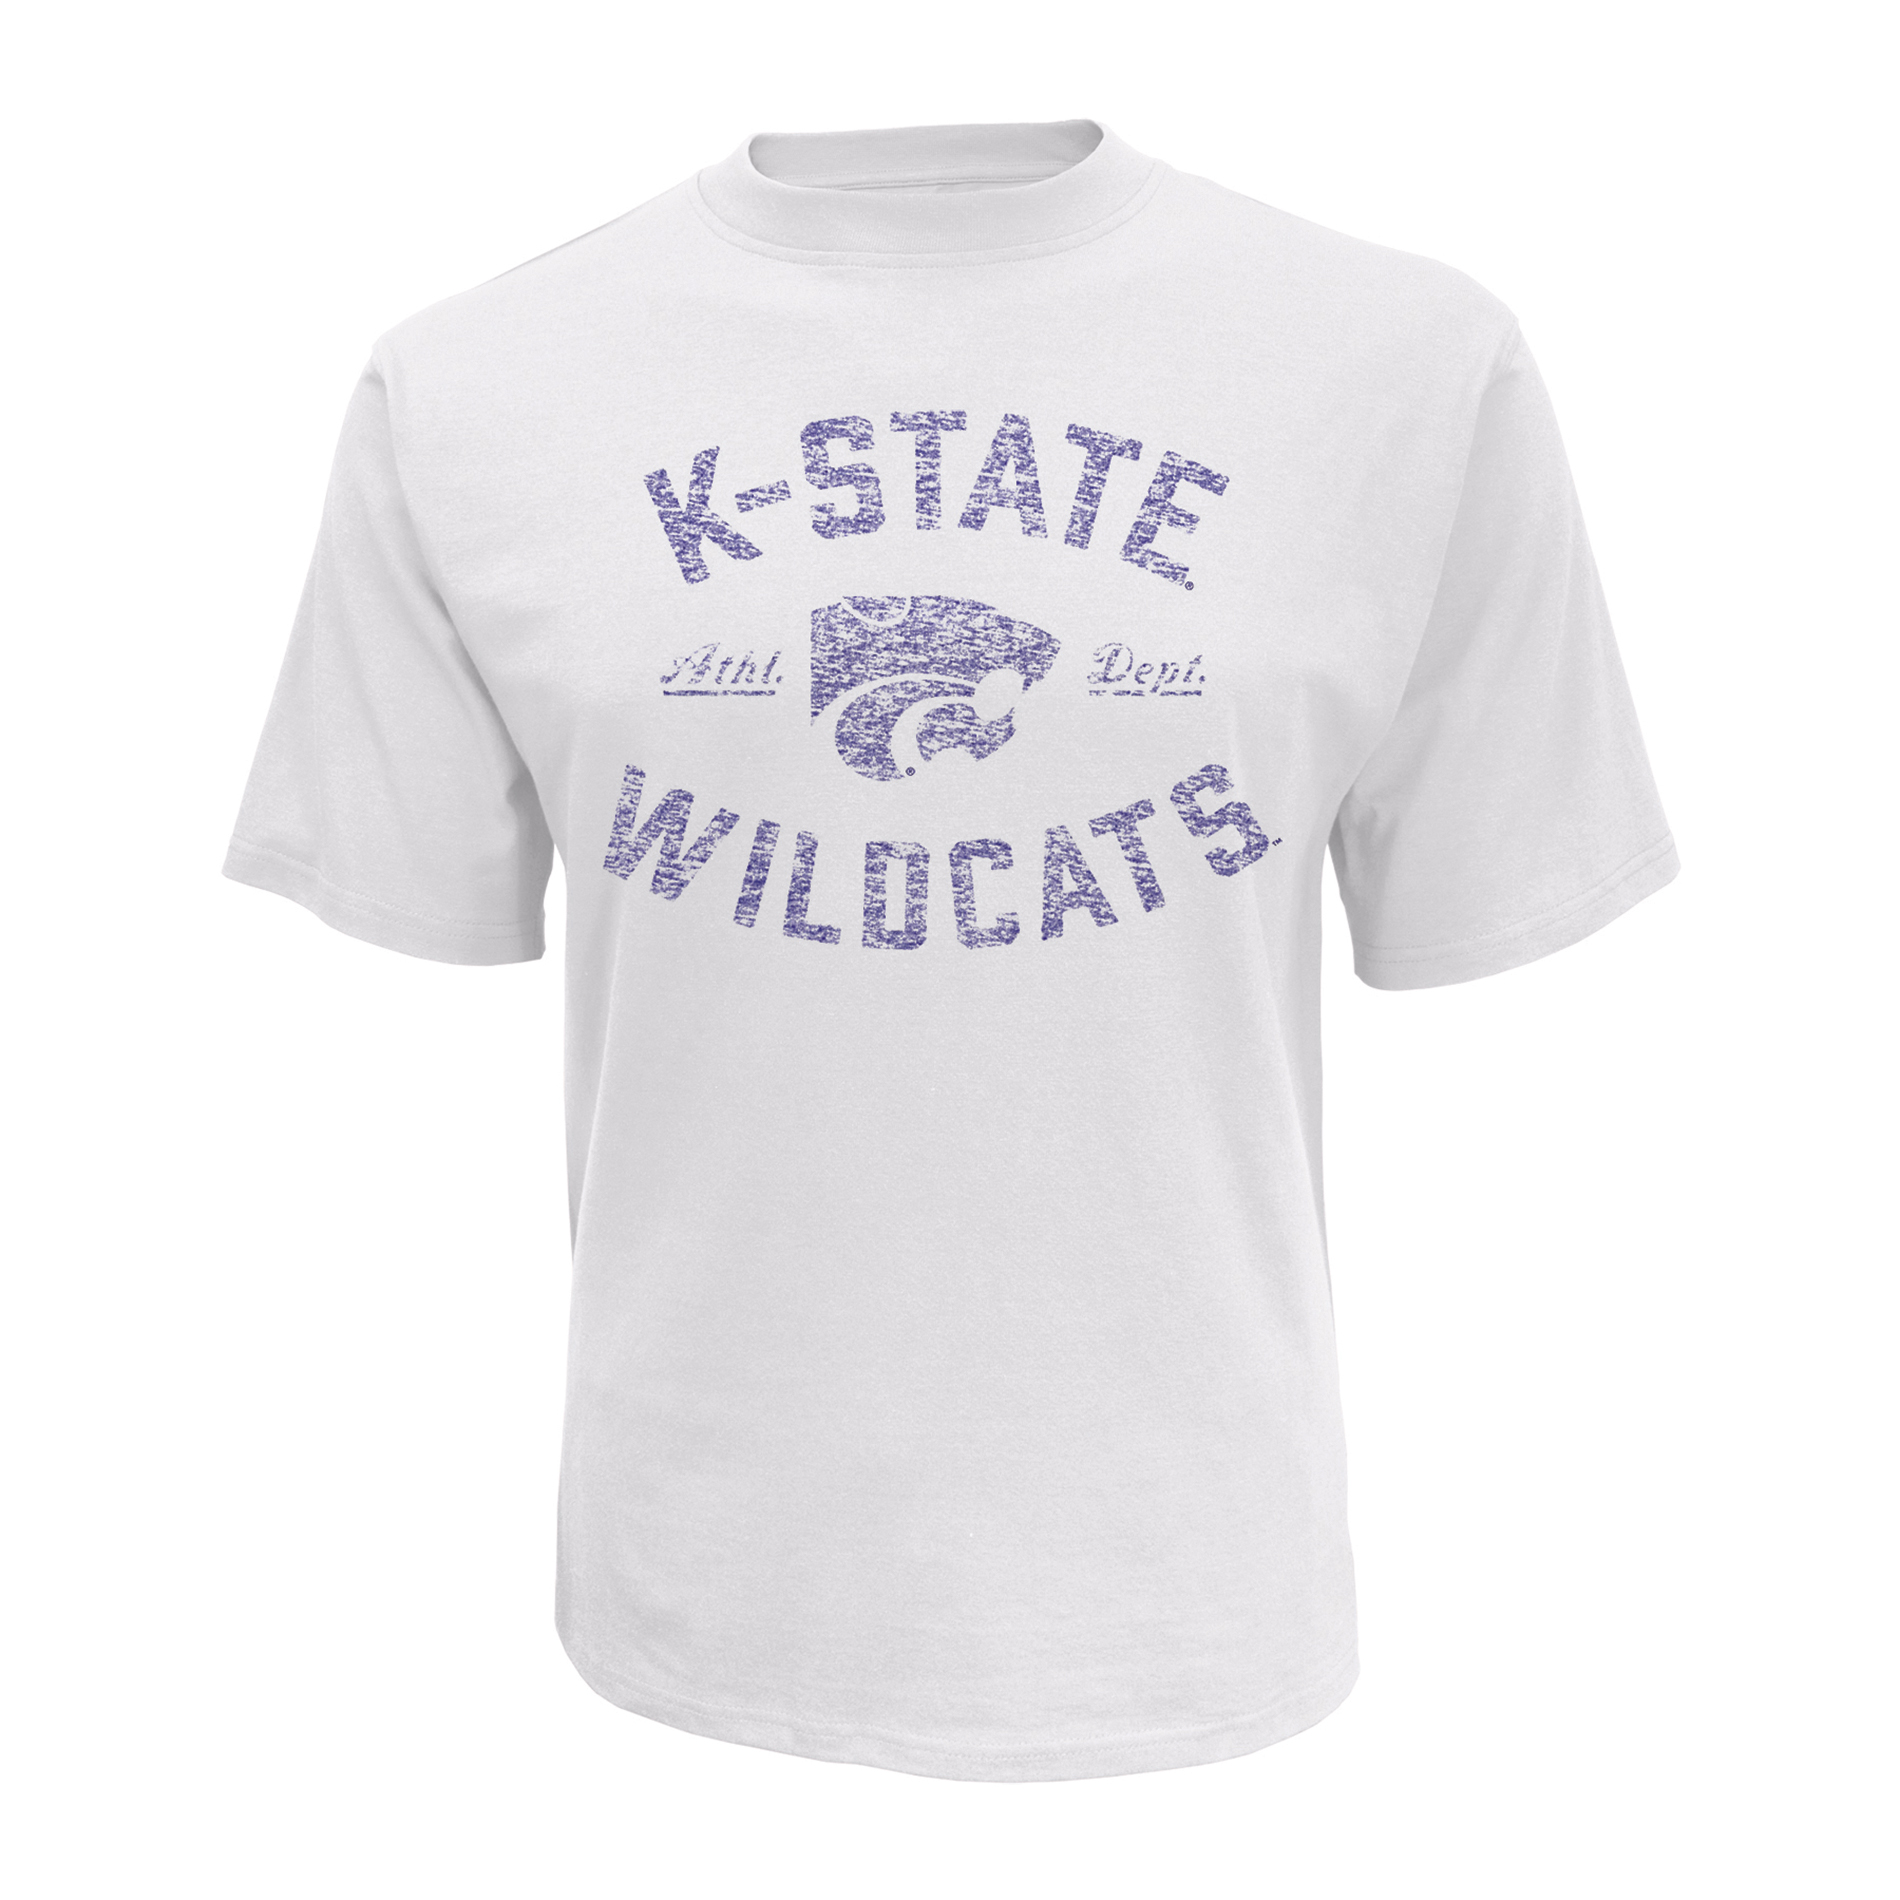 petite NCAA Men's Short-Sleeve T-Shirt - Kansas State Wildcats, Size: XL